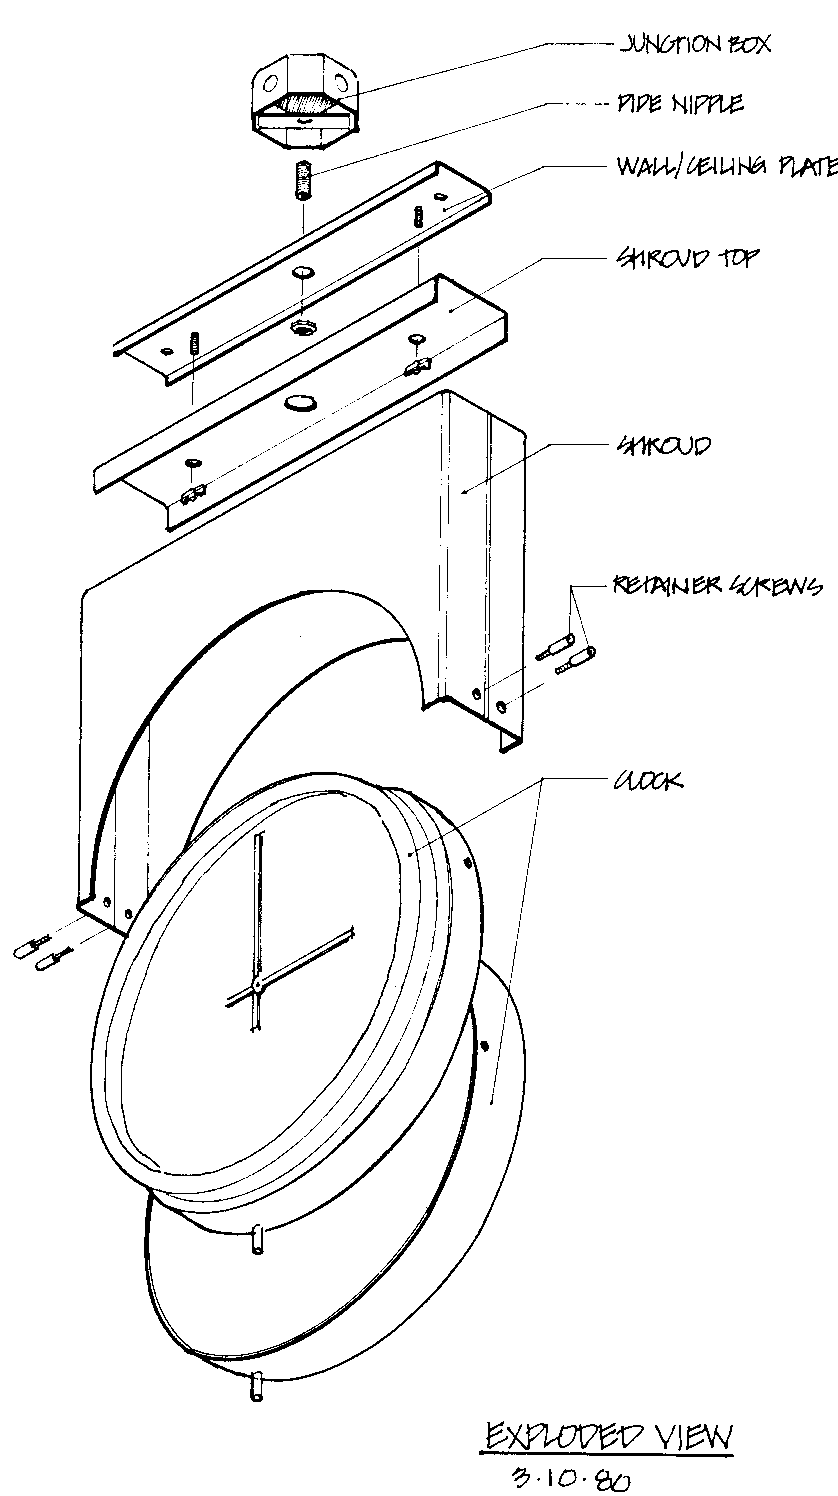 Exploded view drawing of isometric clock parts mounted to a wall or cieling